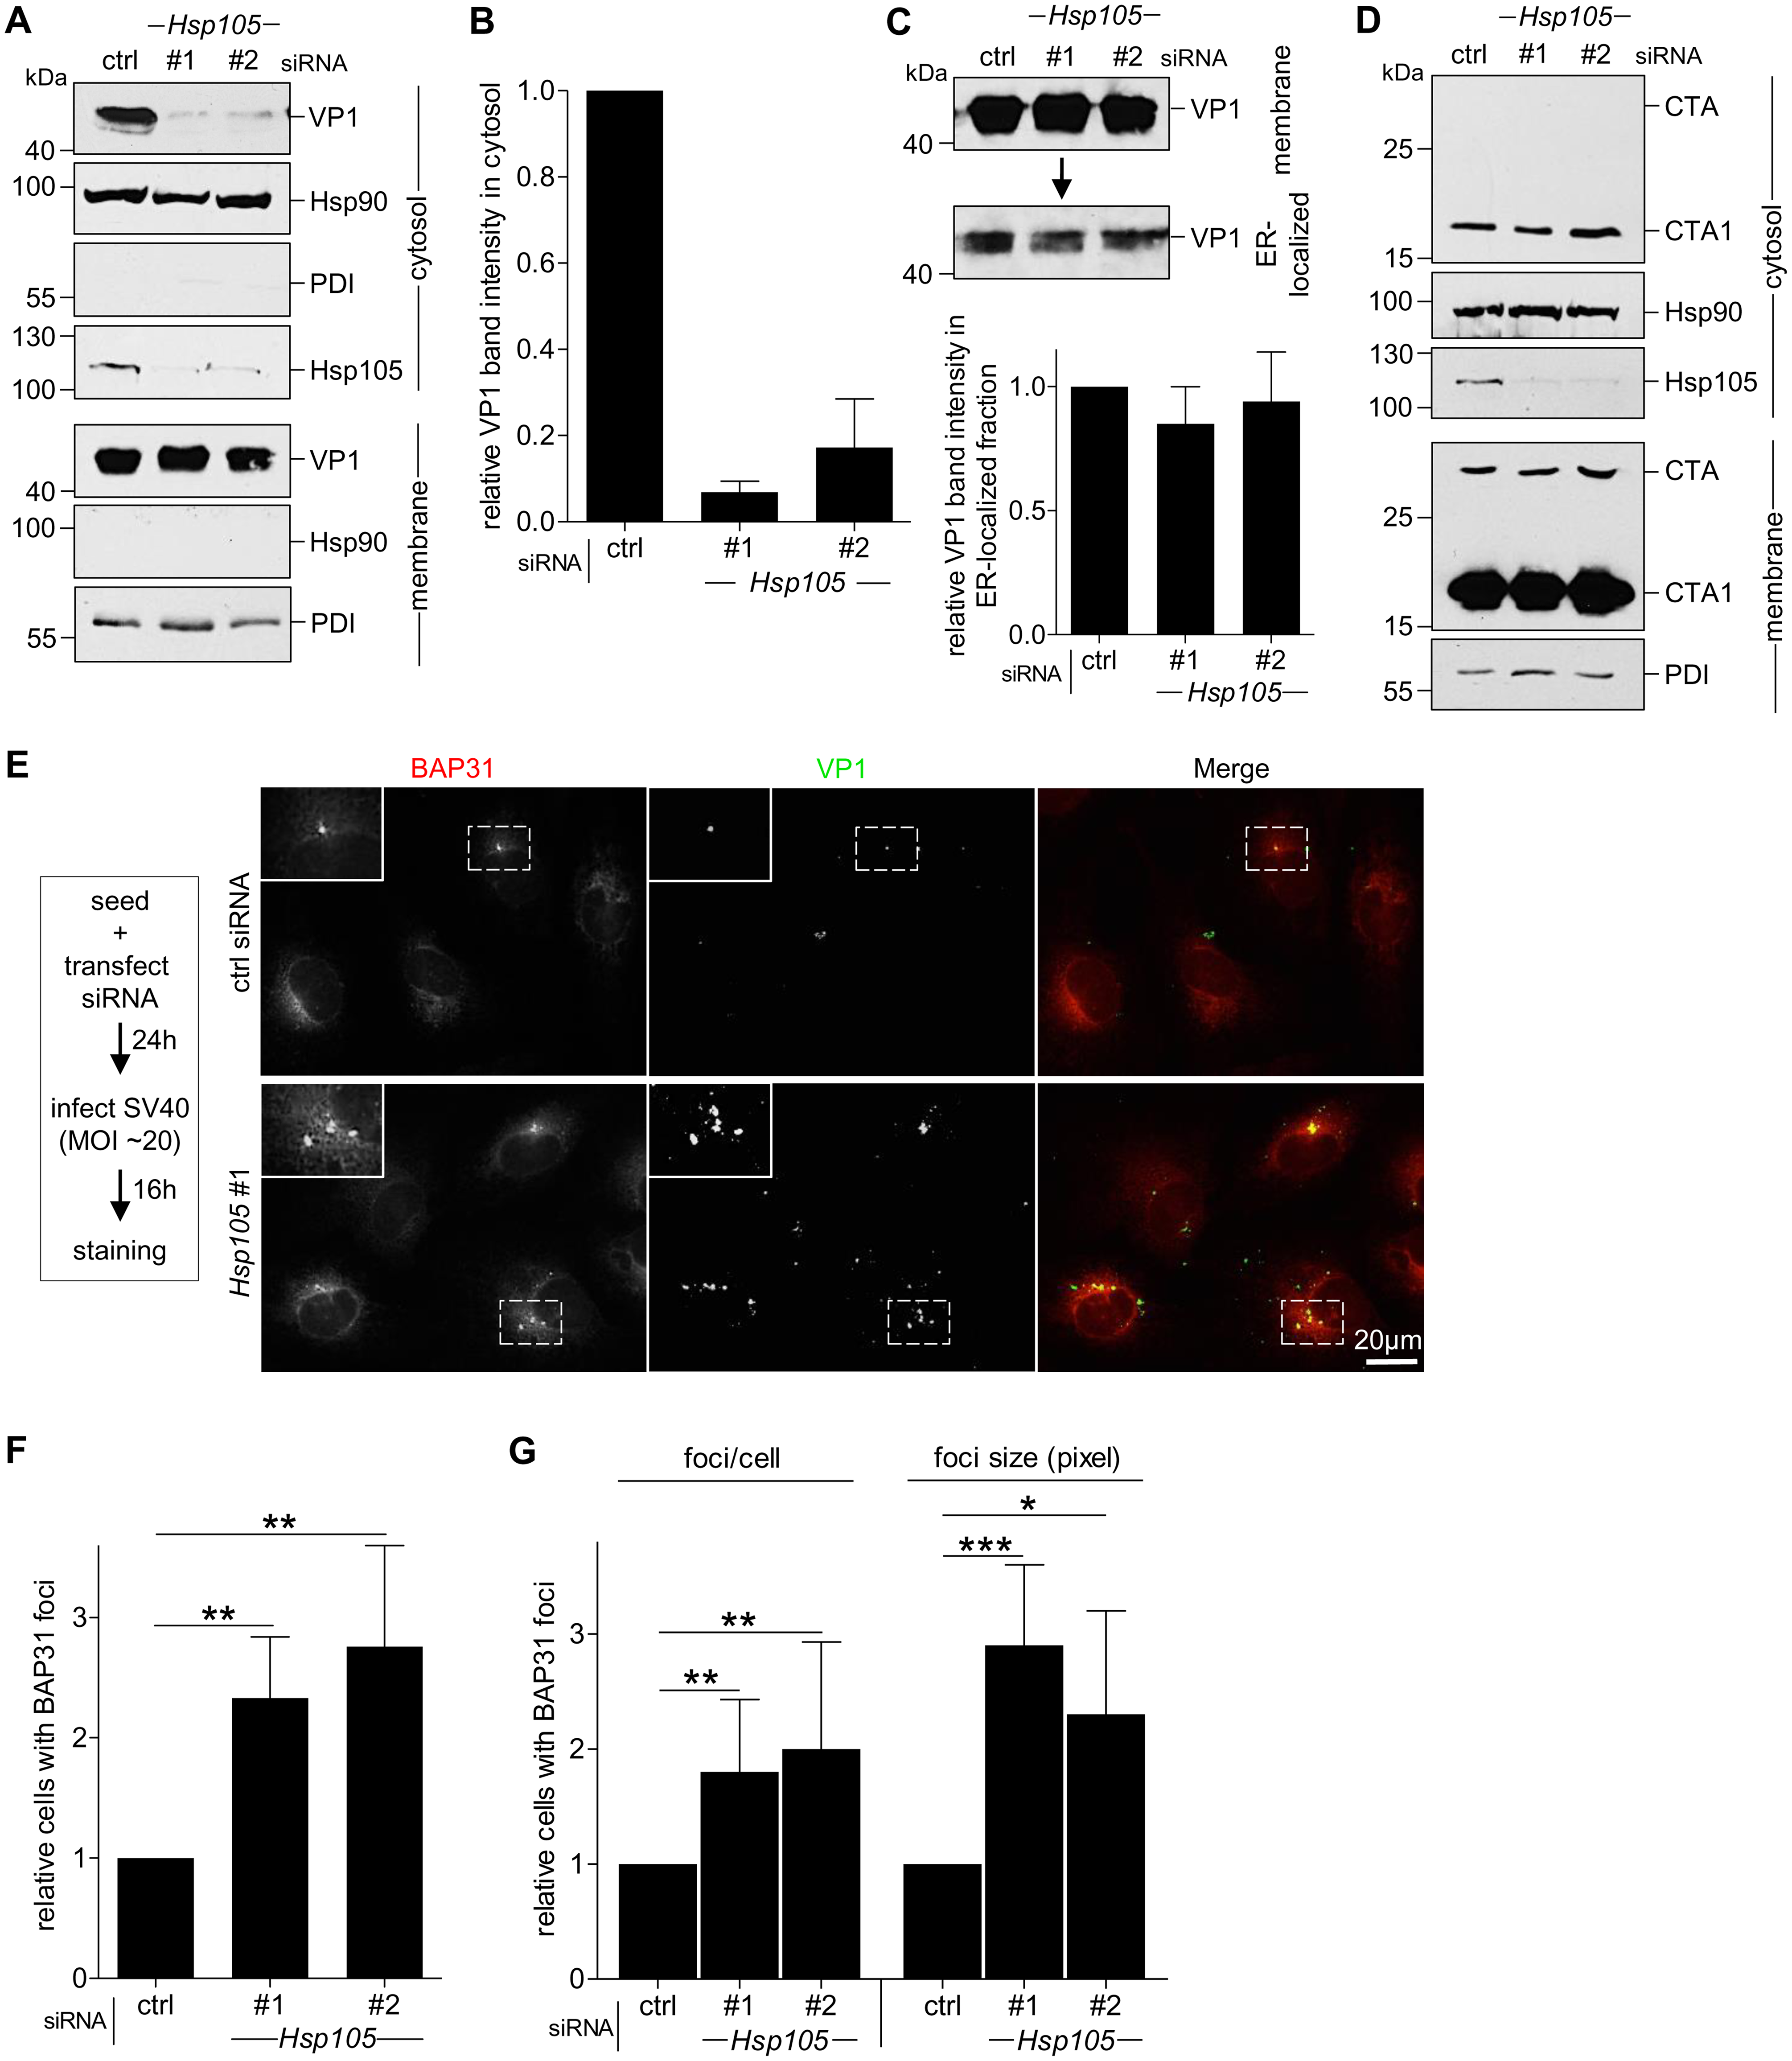 Hsp105 is indispensable for SV40 cytosol arrival.